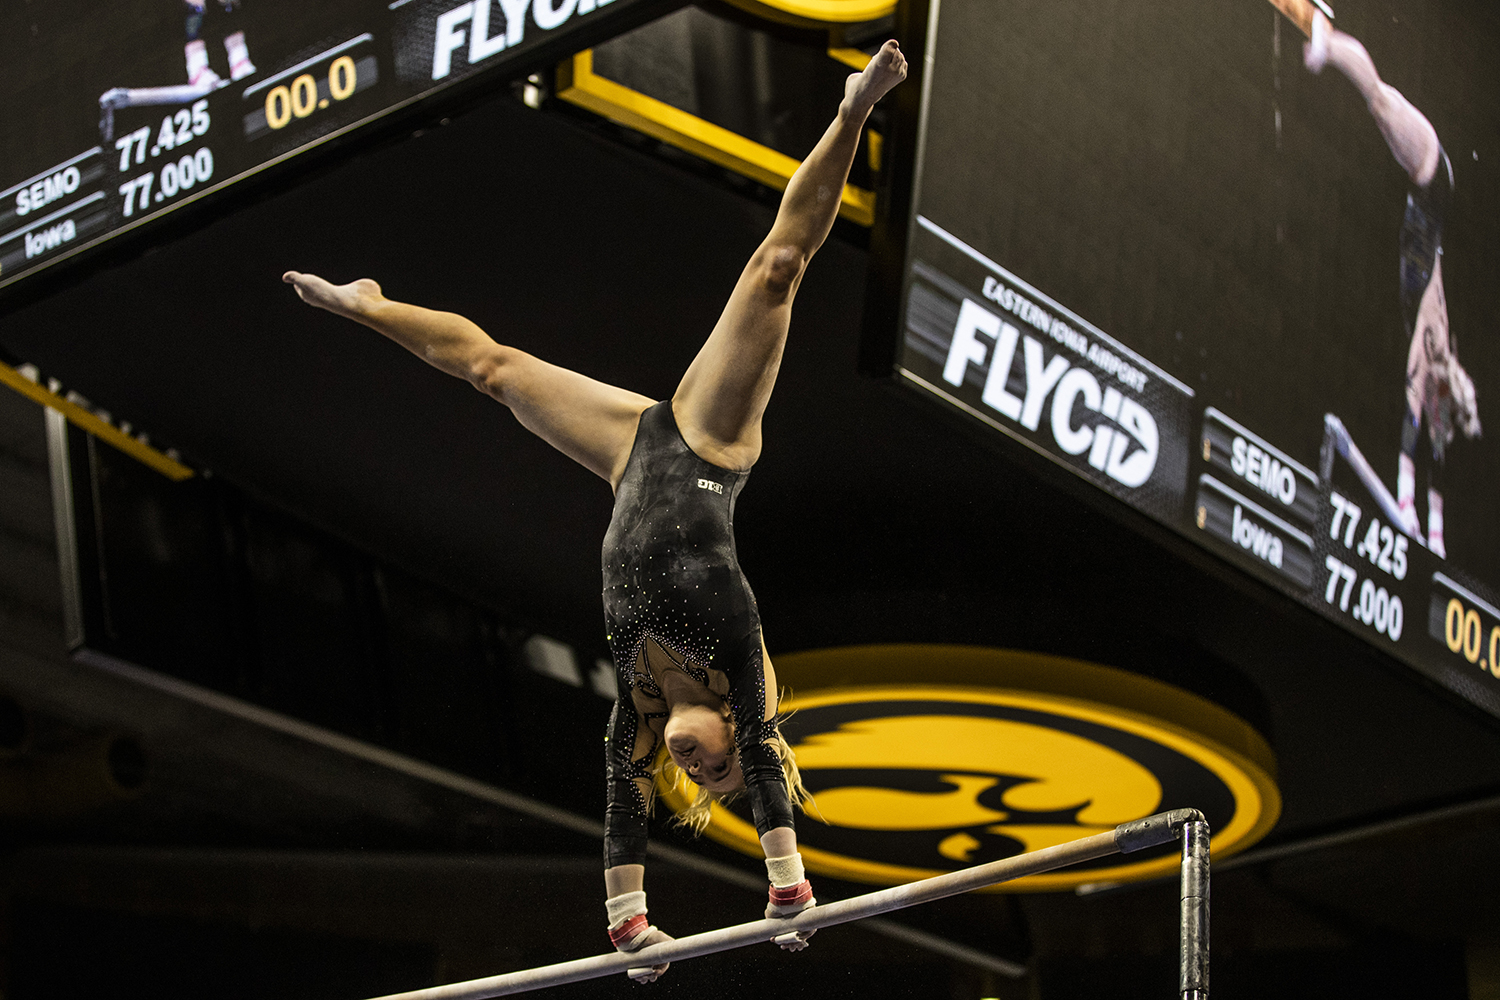 Iowa+gymnast+Charlotte+Sullivan+performs+on+the+uneven+bars+during+the+women%27s+gymnastics+meet+vs.+SEMO+at+Carver-Hawkeye+Arena+on+Friday%2C+January+11%2C+2019.+The+GymHawks+defeated+the+Redhawks+194.700-180.925.+